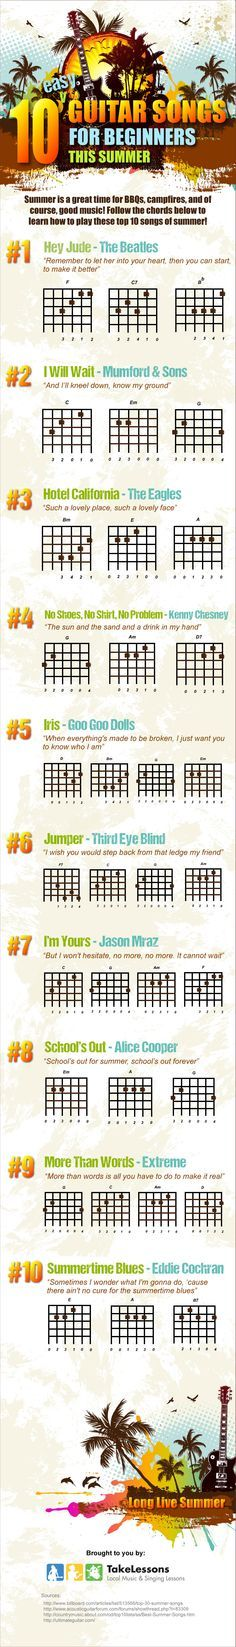 10 Easy Guitar Songs for Beginners This Summer